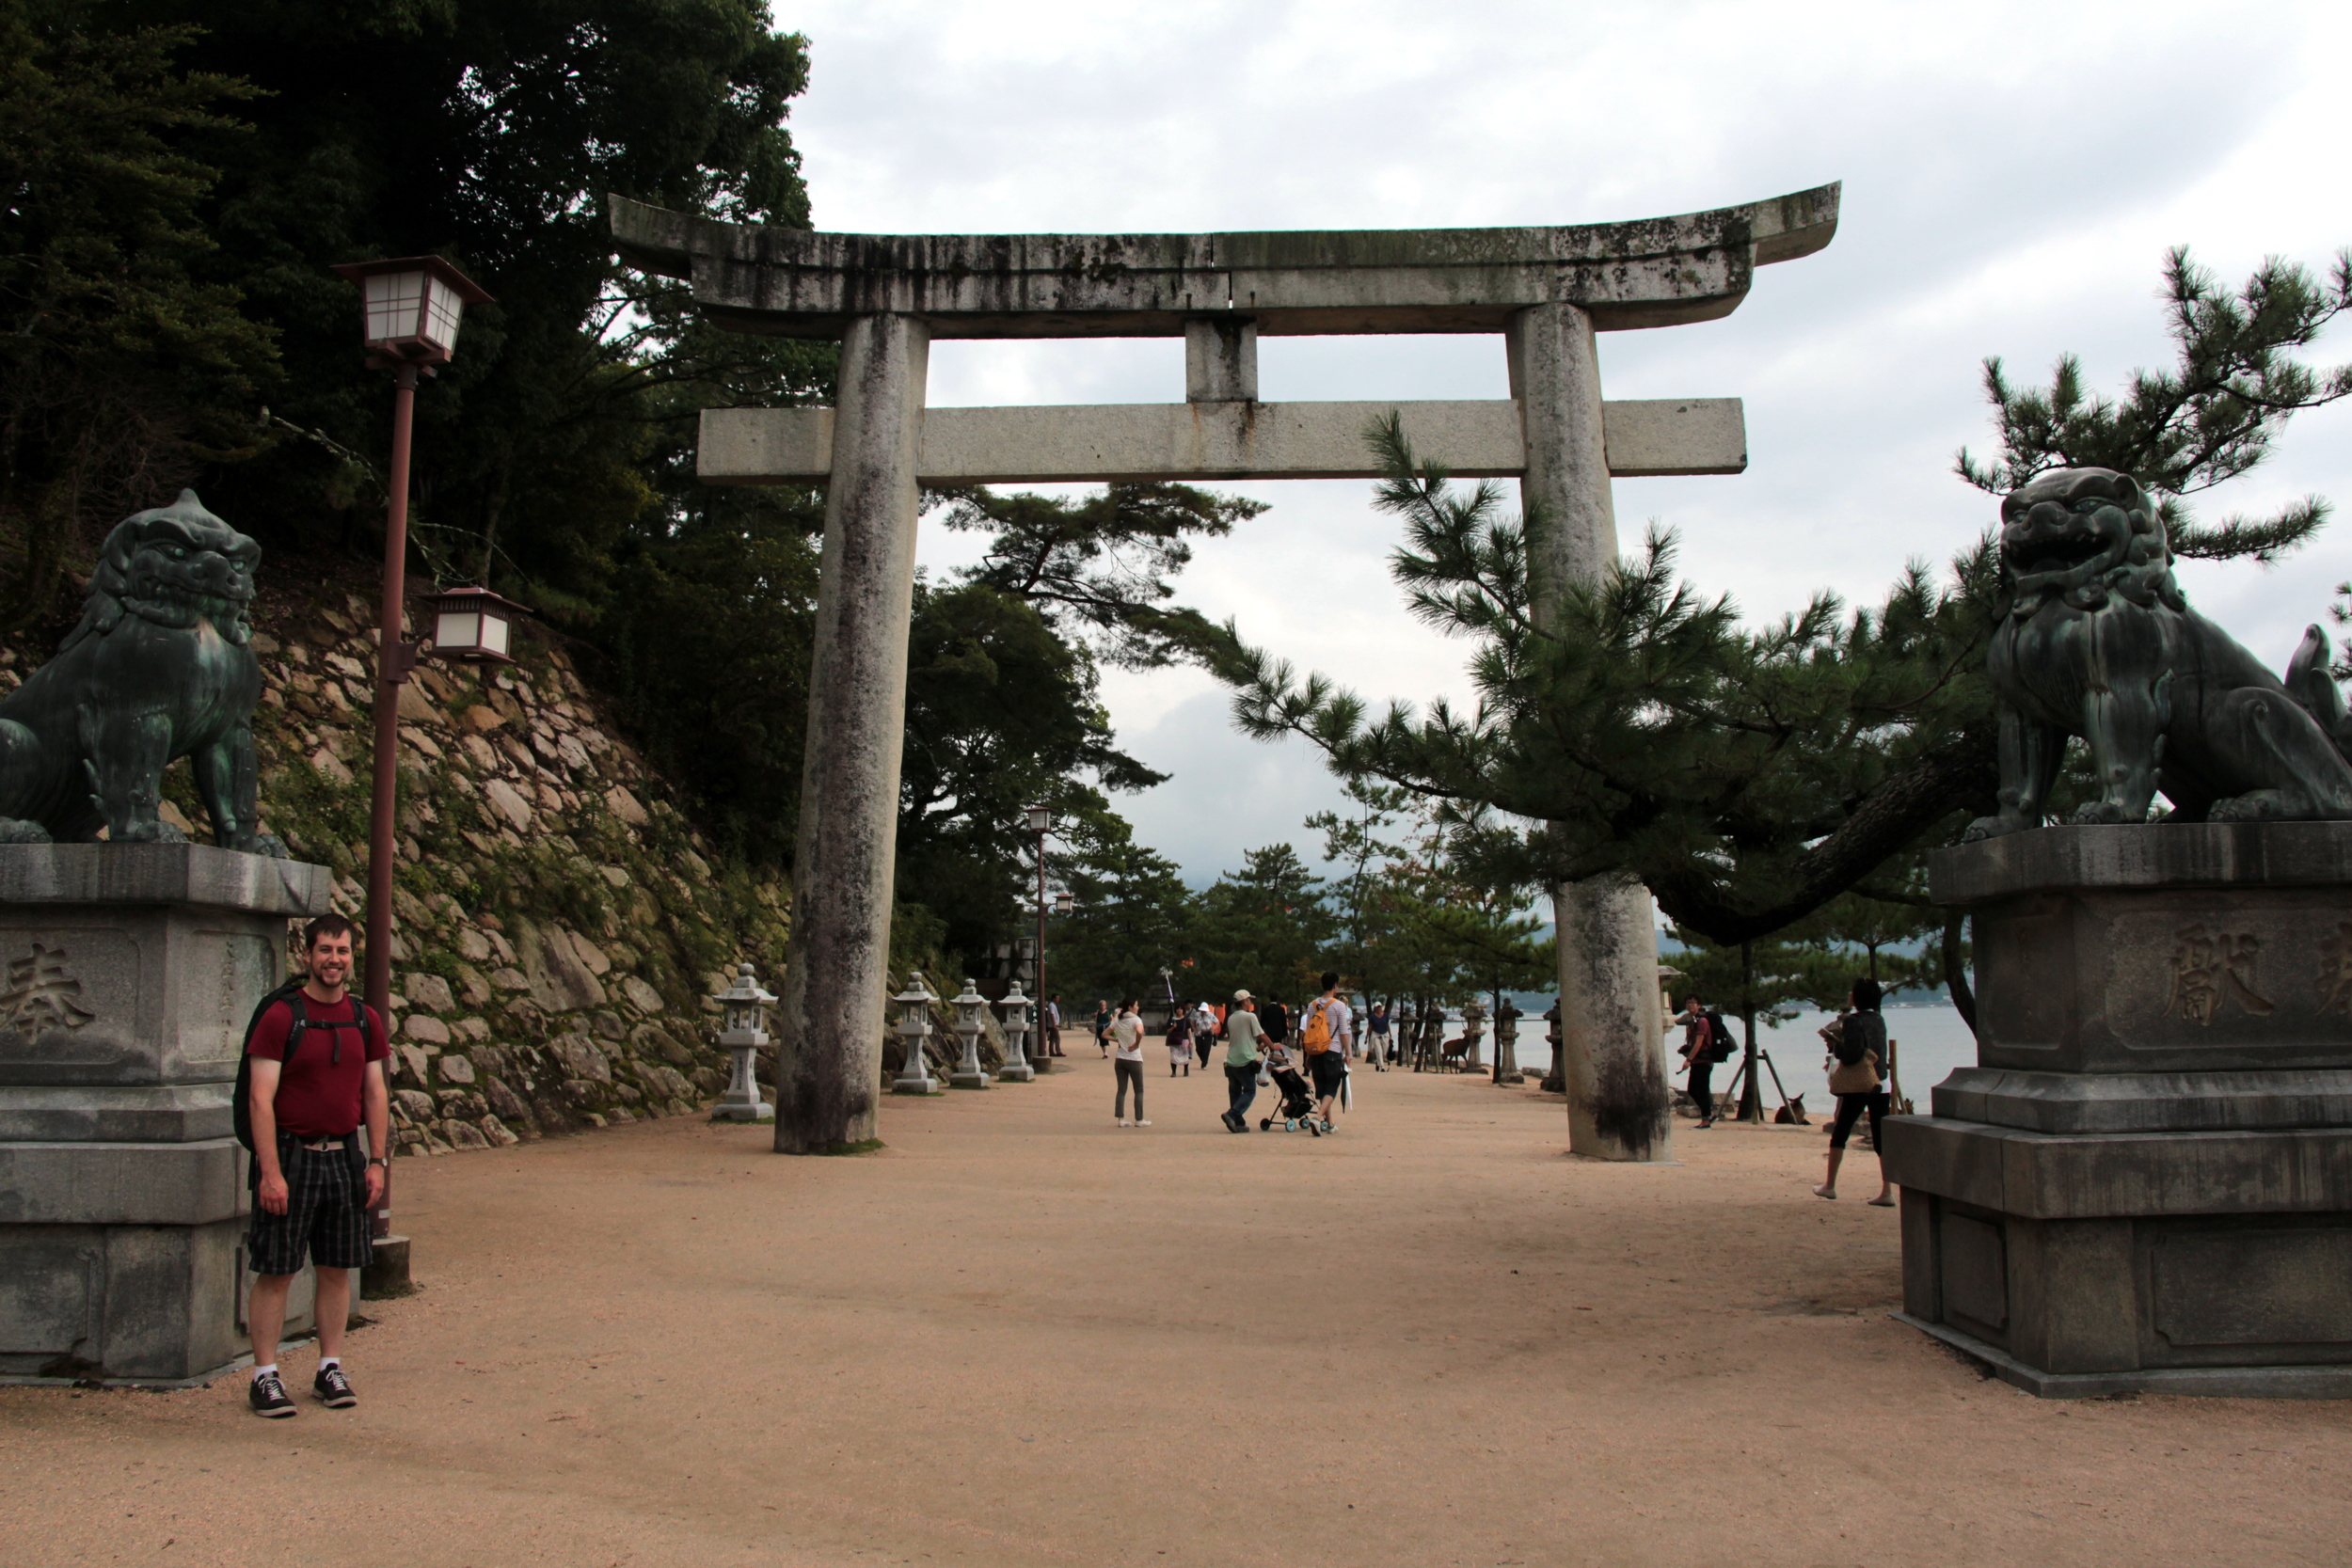 A large torii gate on Miyajima. We have seen gates made of stone and wood. Note the two lions, one on each side of the gate. Some gates have guardian statues such as these. One of the guardians will have its mouth open, the other closed.